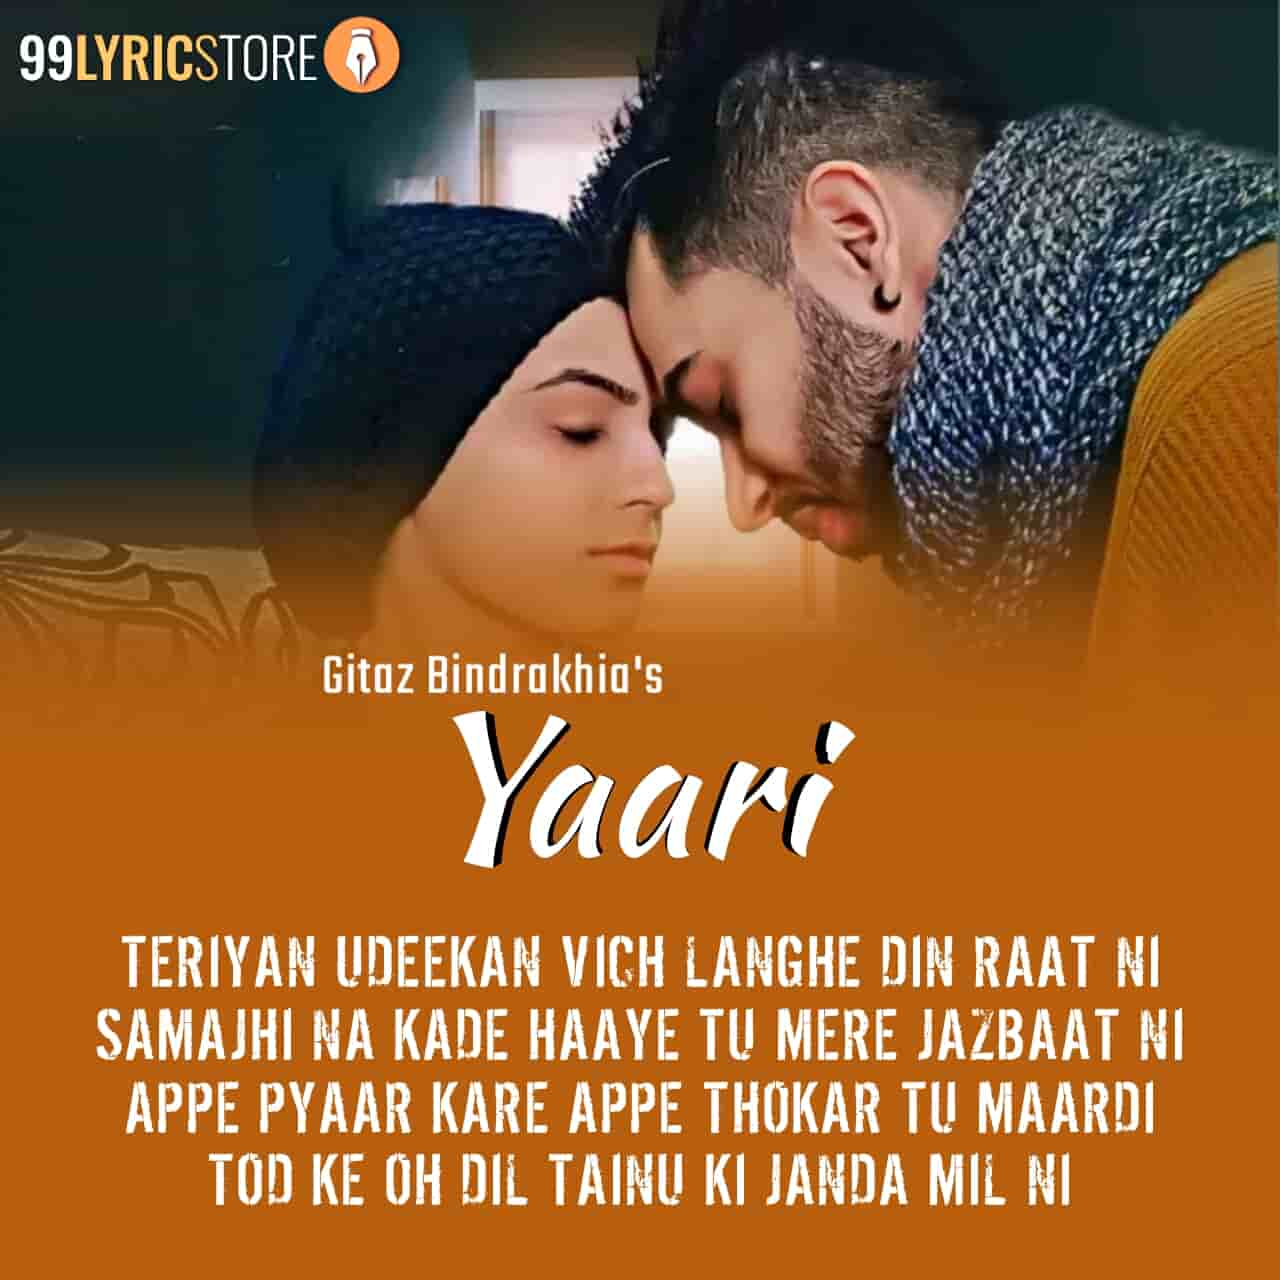 Yaari Punjabi song lyrics sung by Gitaz Bindrakhia